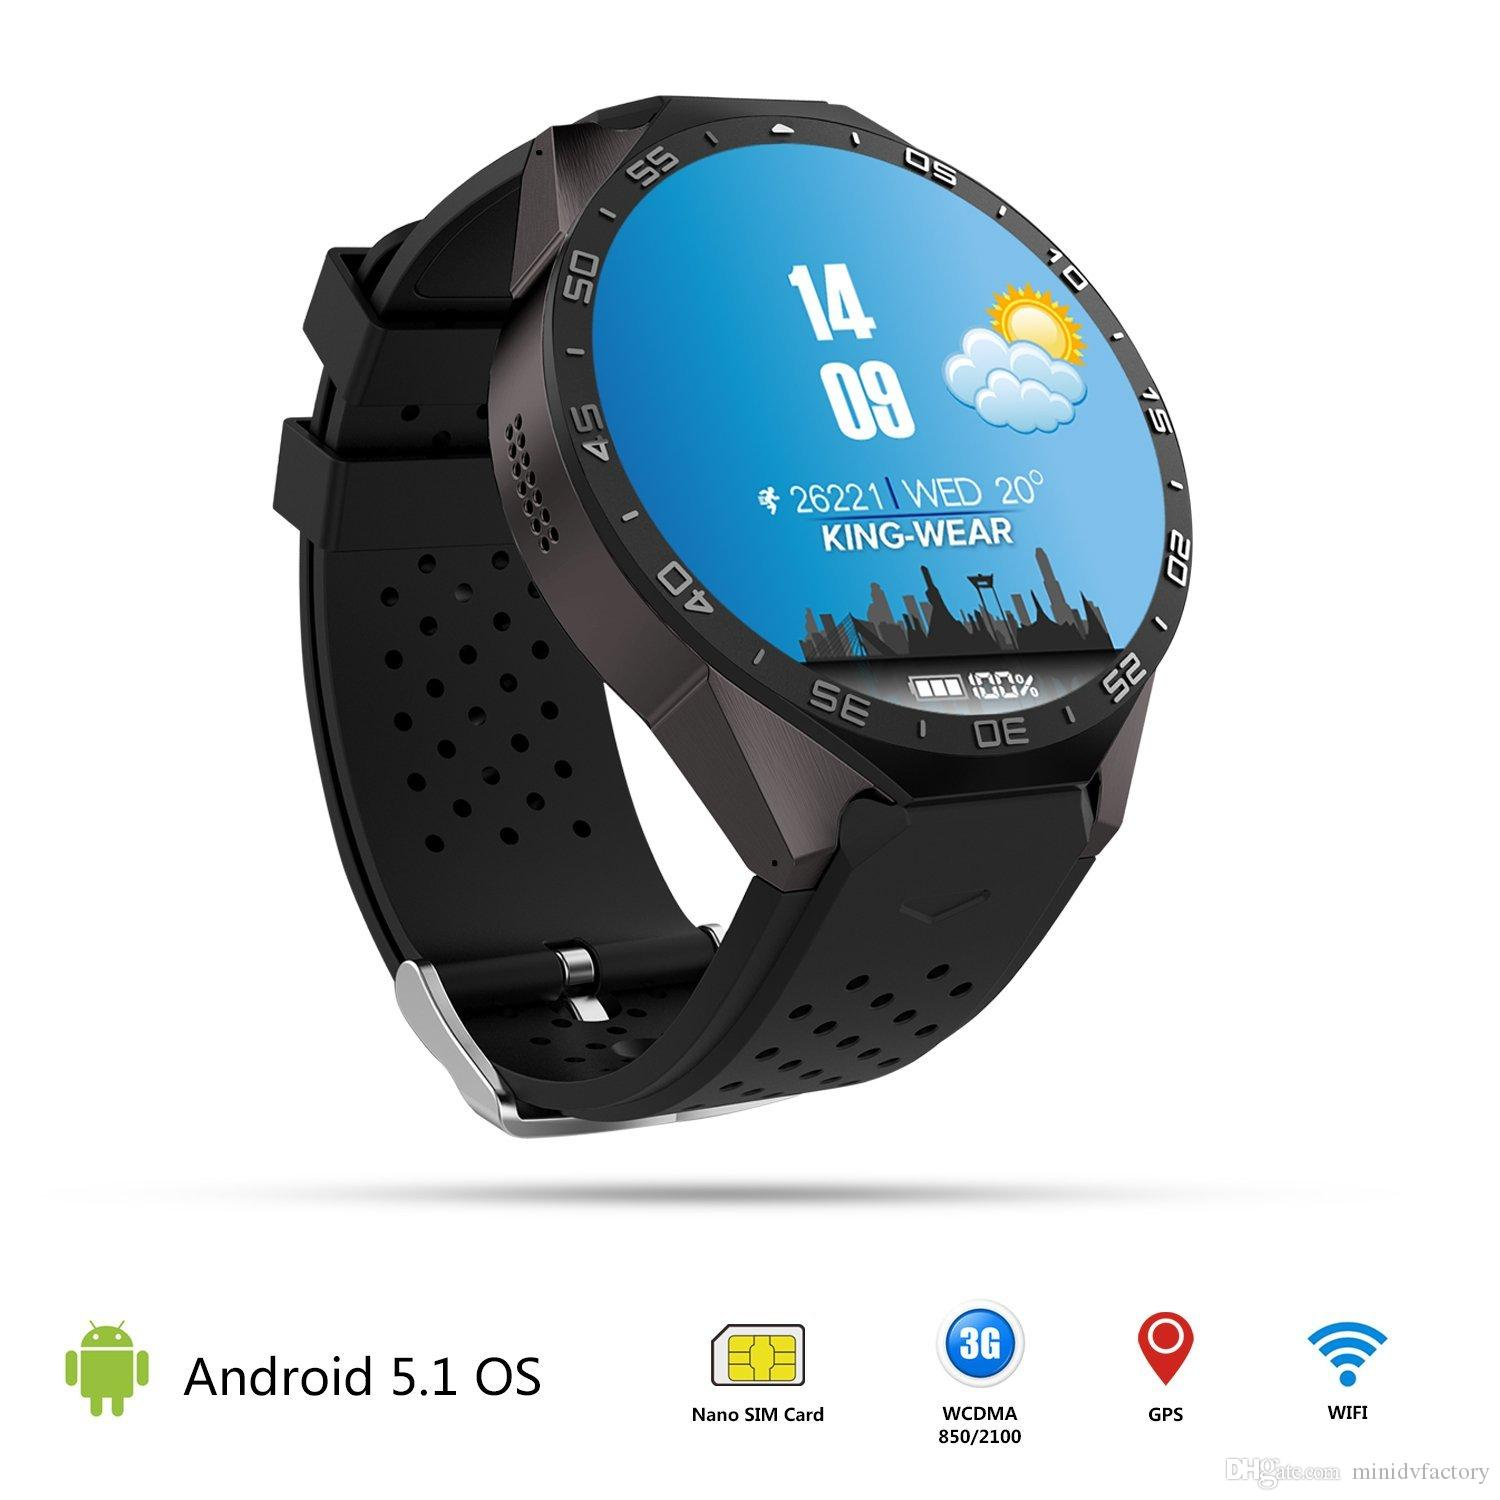 New Kingwear KW88 Android 5 1 OS MTK6580 Quad Core Smart Watch Phone 1 39  Inch 400*400 Smartwatch Support 3G WCDMA Nano SIM Wifi Heart Rate